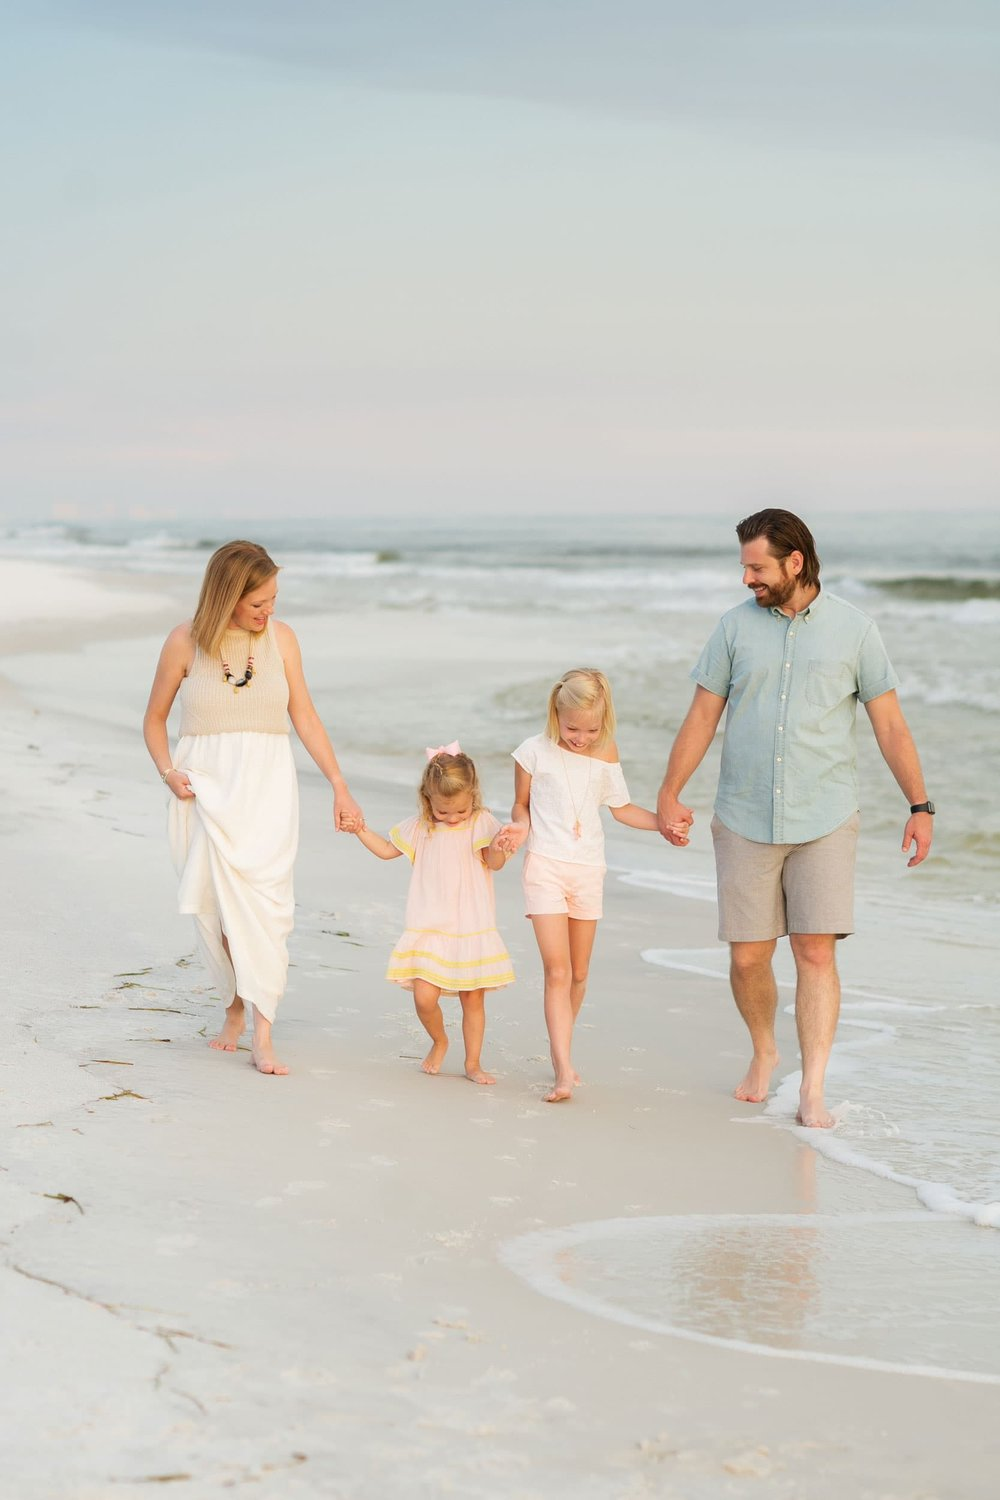 family on holiday in florida walks in the waves